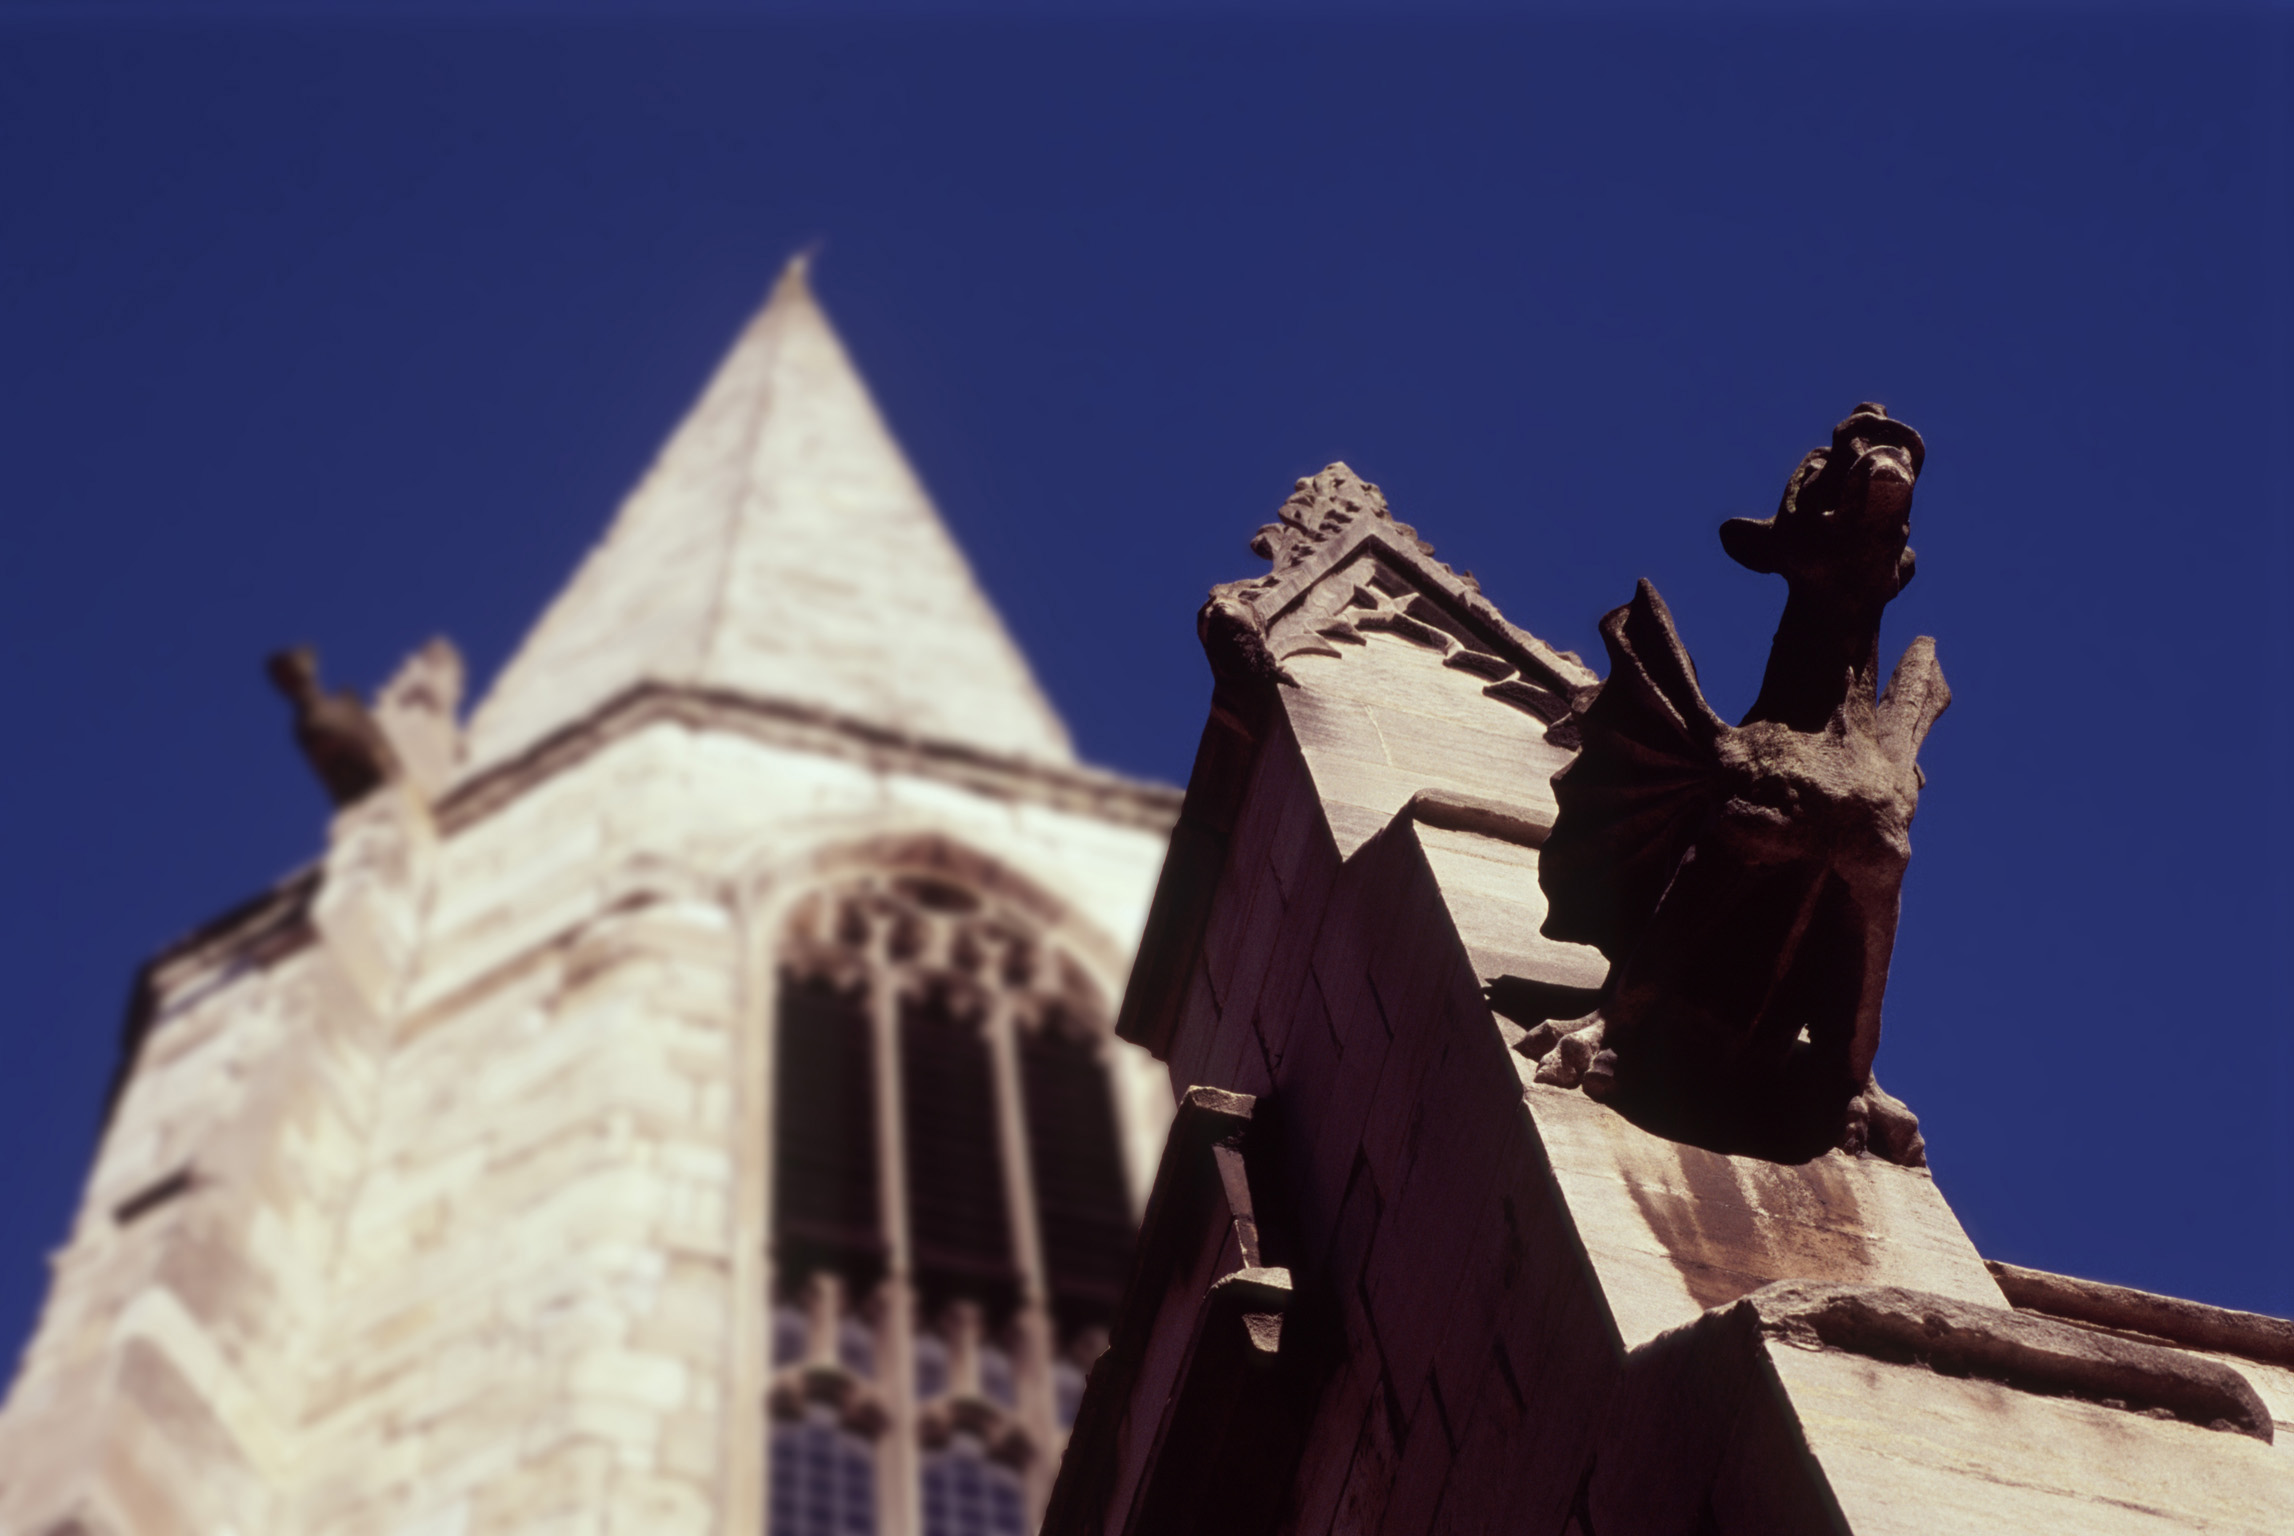 Gargoyle of a bat or dragon of carved stone mounted on a tower in York, UK